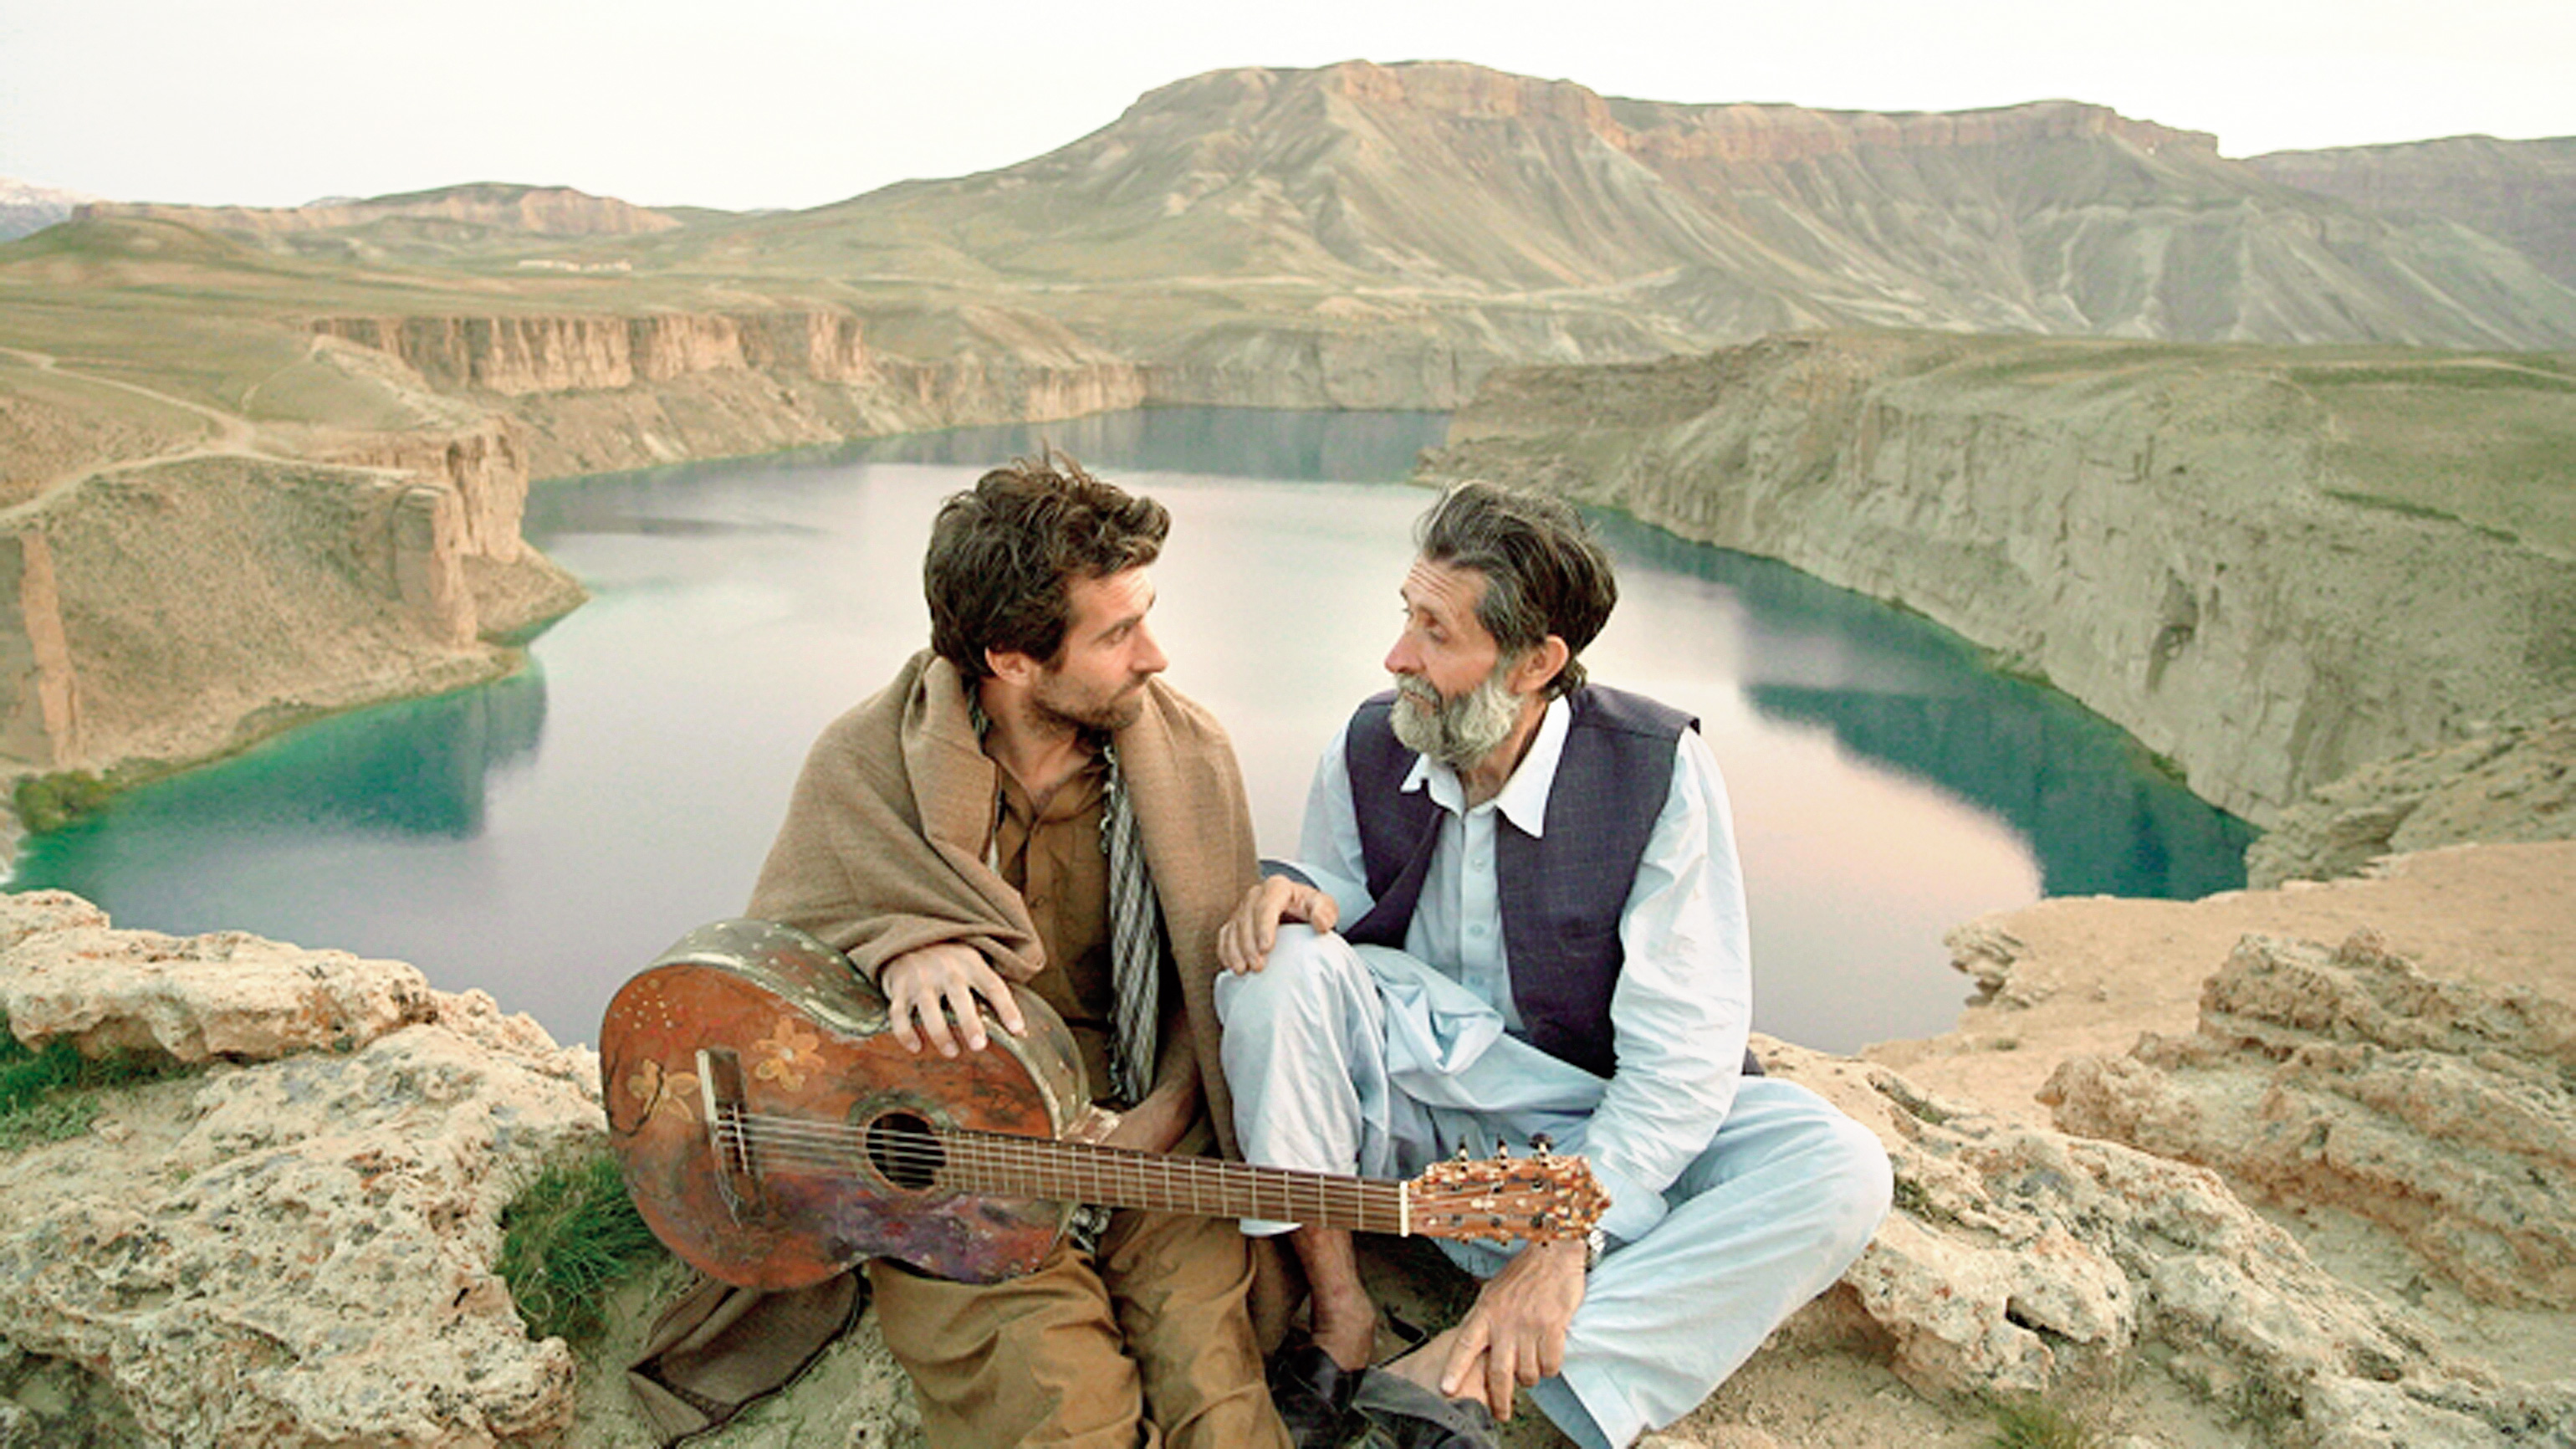 A moment from Jirga